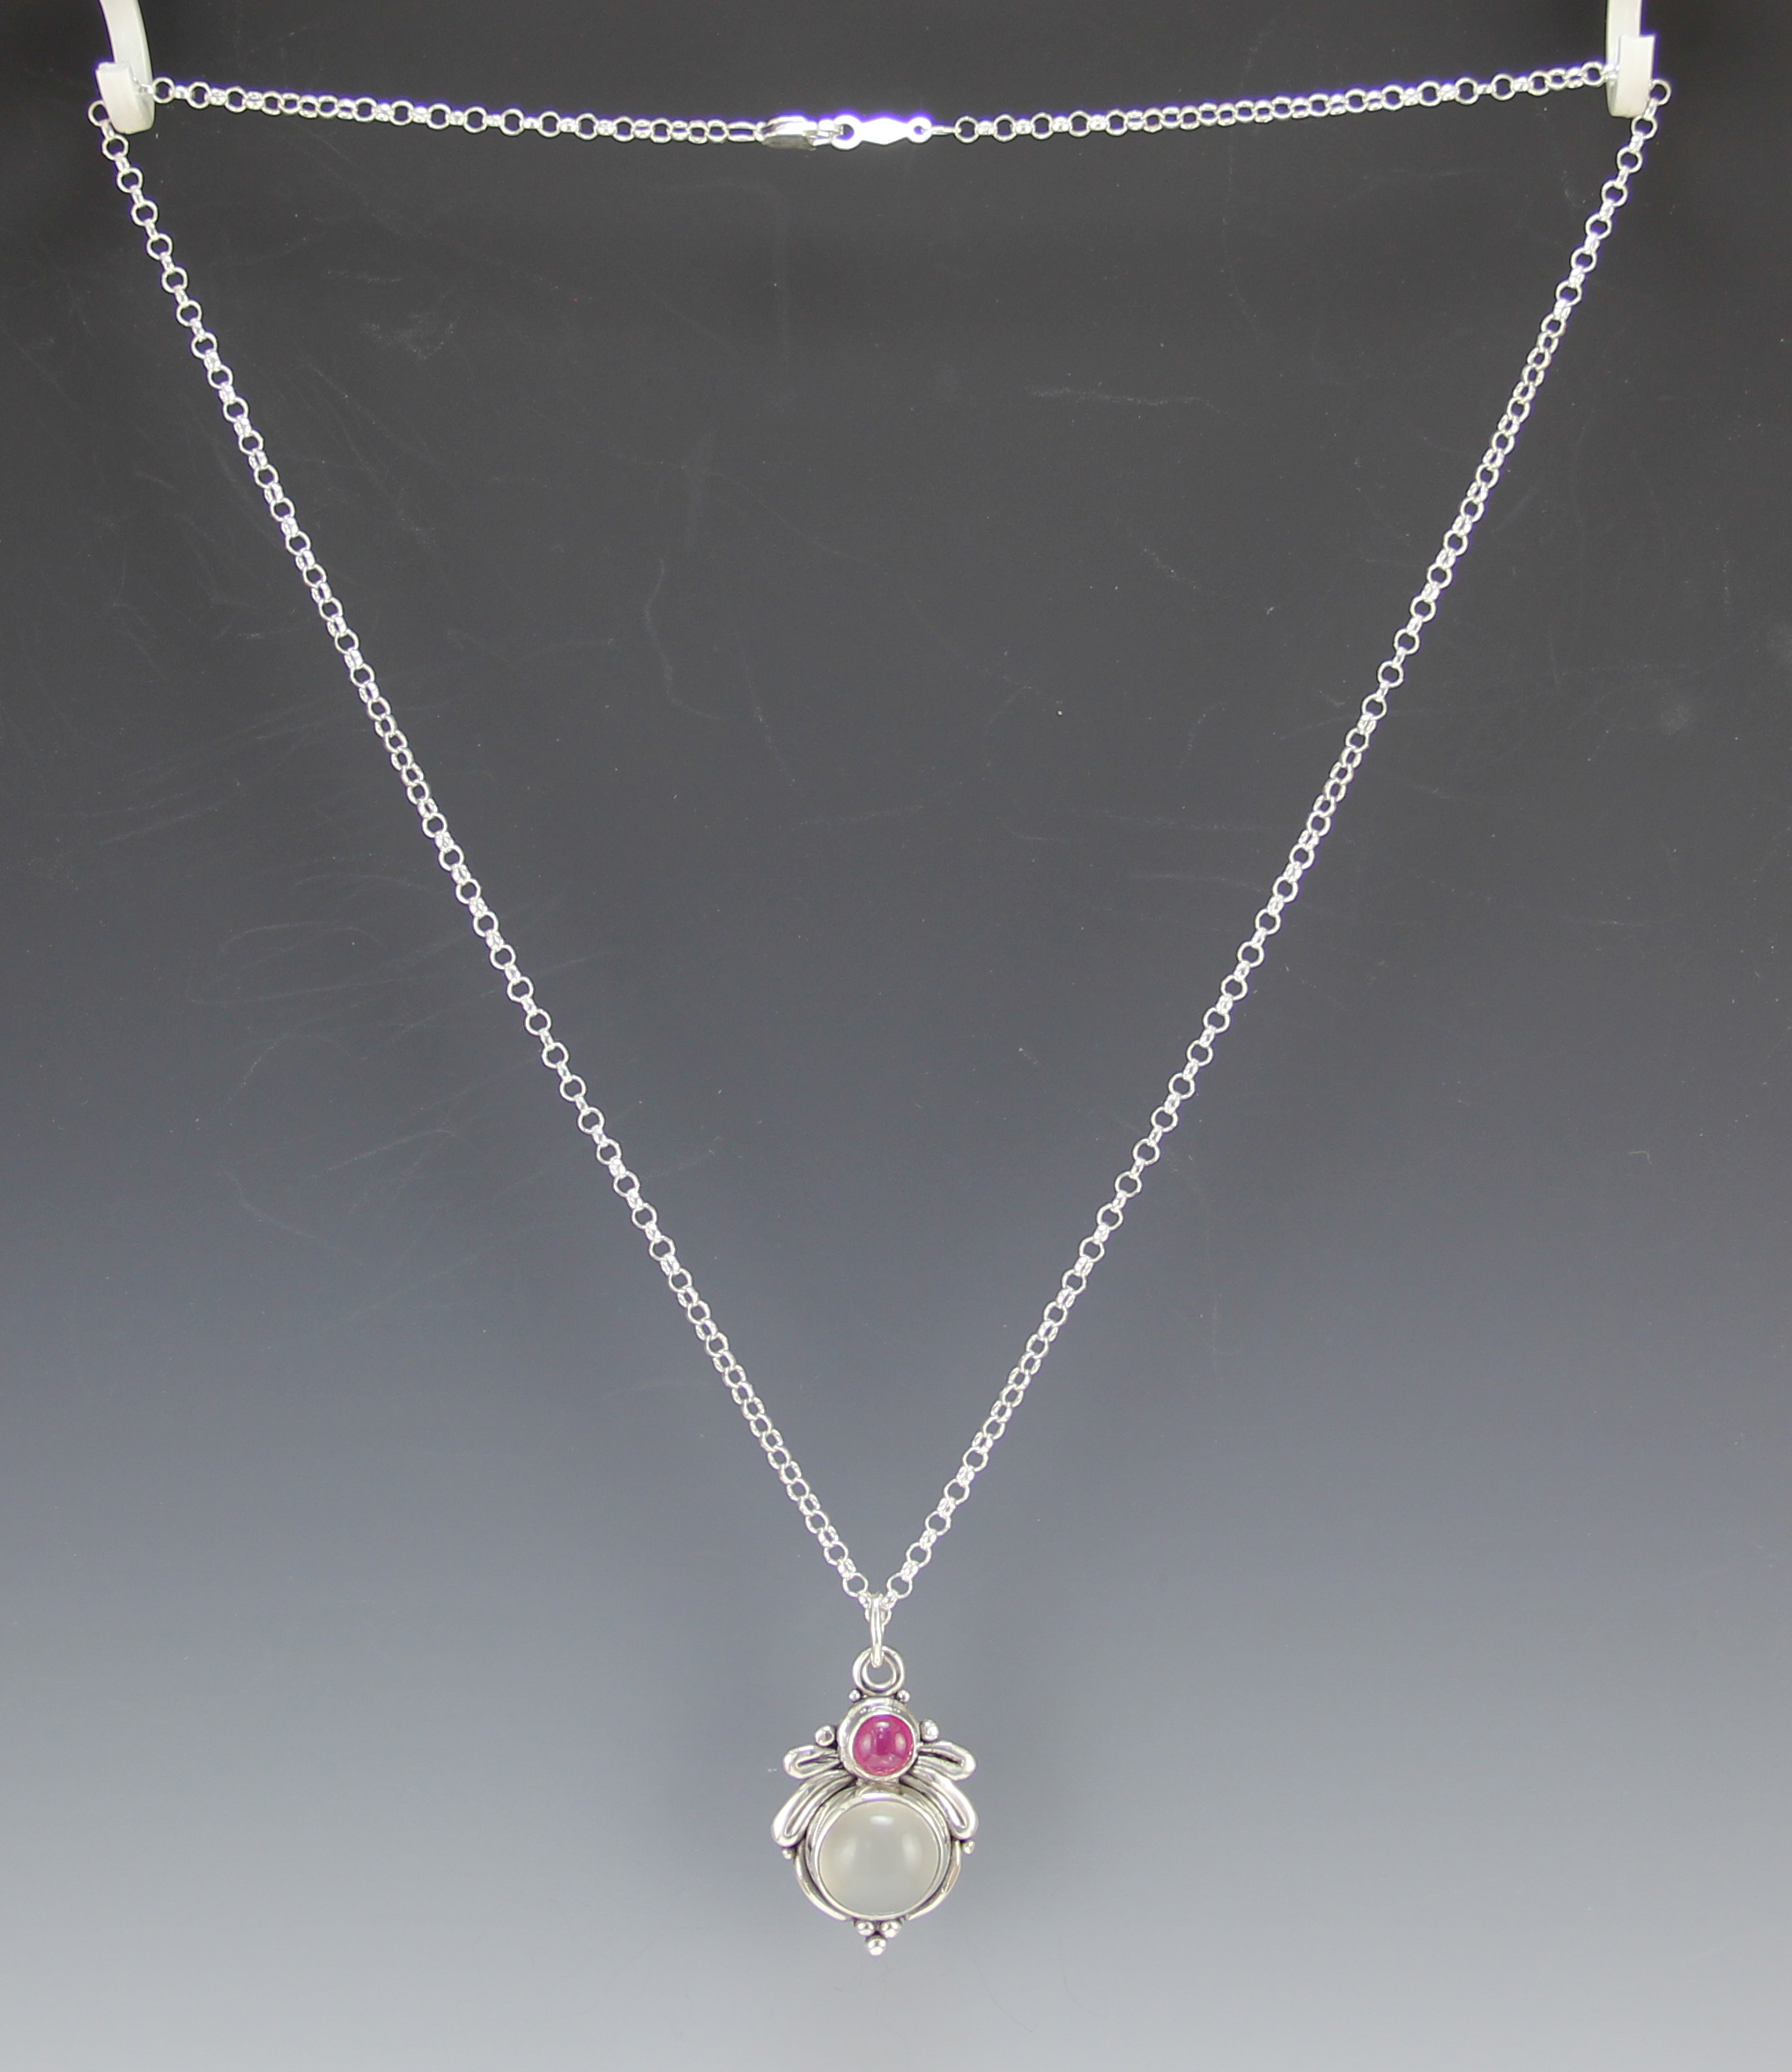 tourmaline jw necklace jewellery with hkd couture gold set photoshoot and pendant pink earrings diamonds in certificate